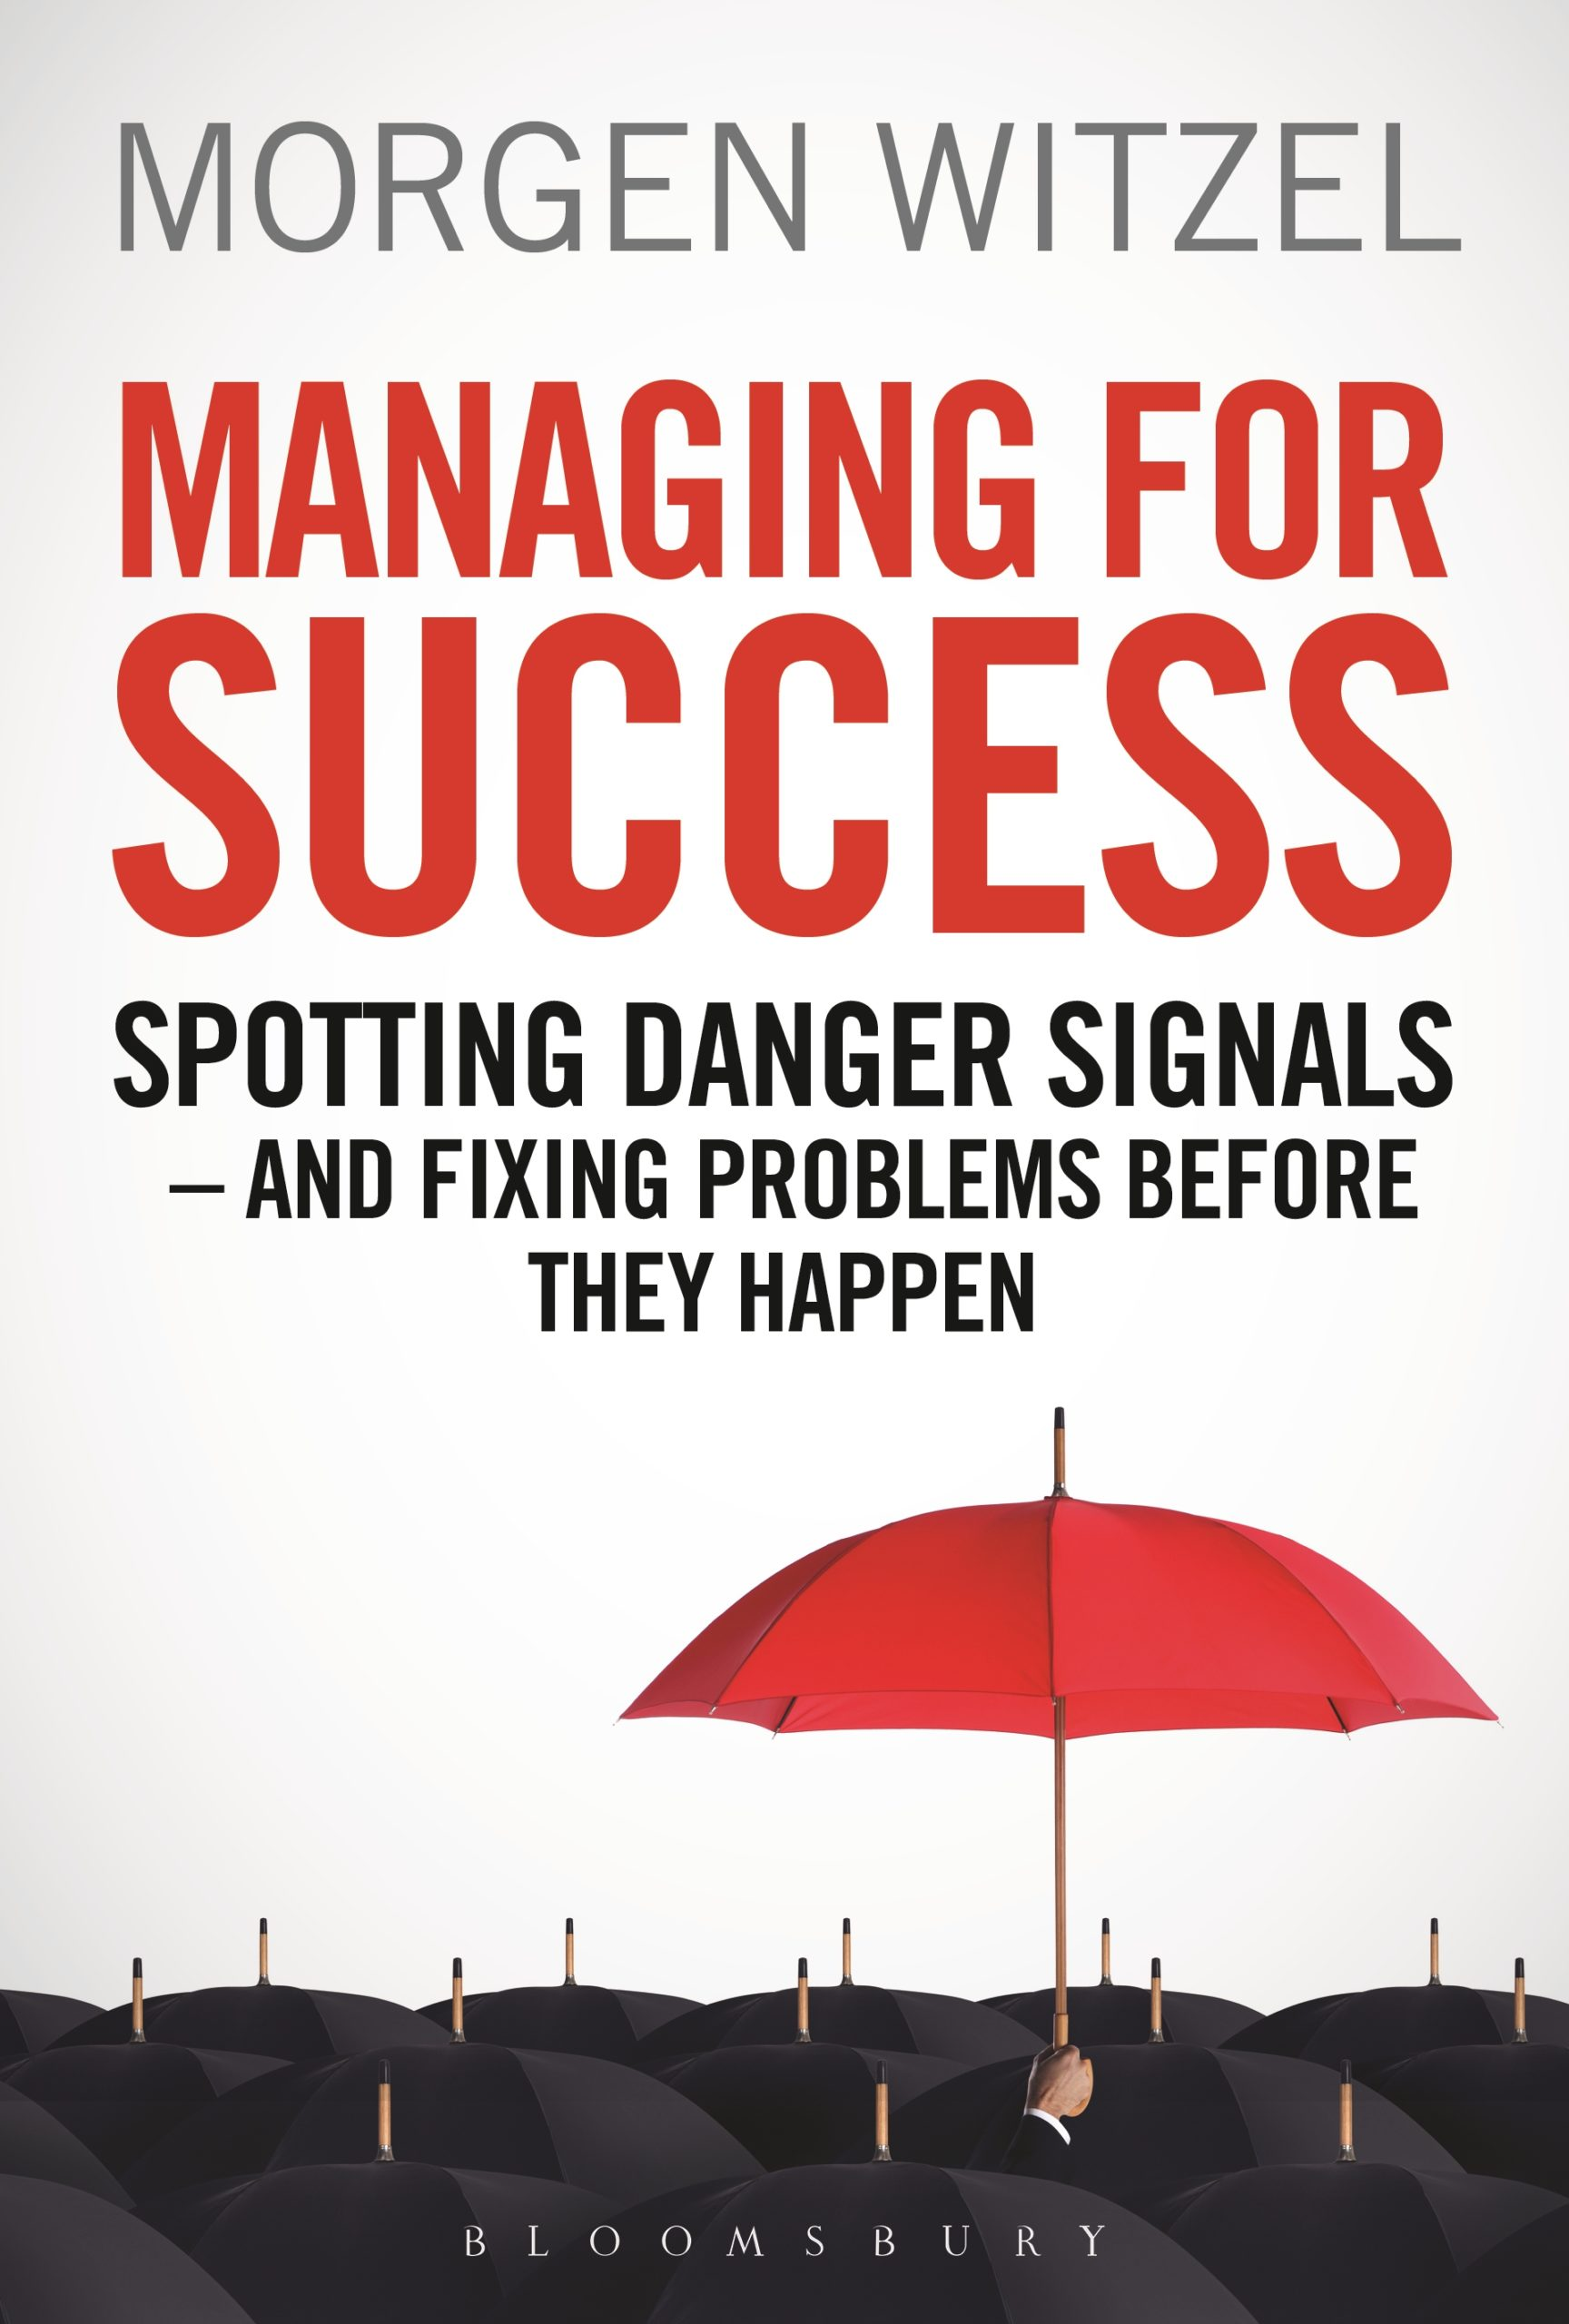 Managing for Success: Spotting Danger Signals and Fixing Problems Before They Happen